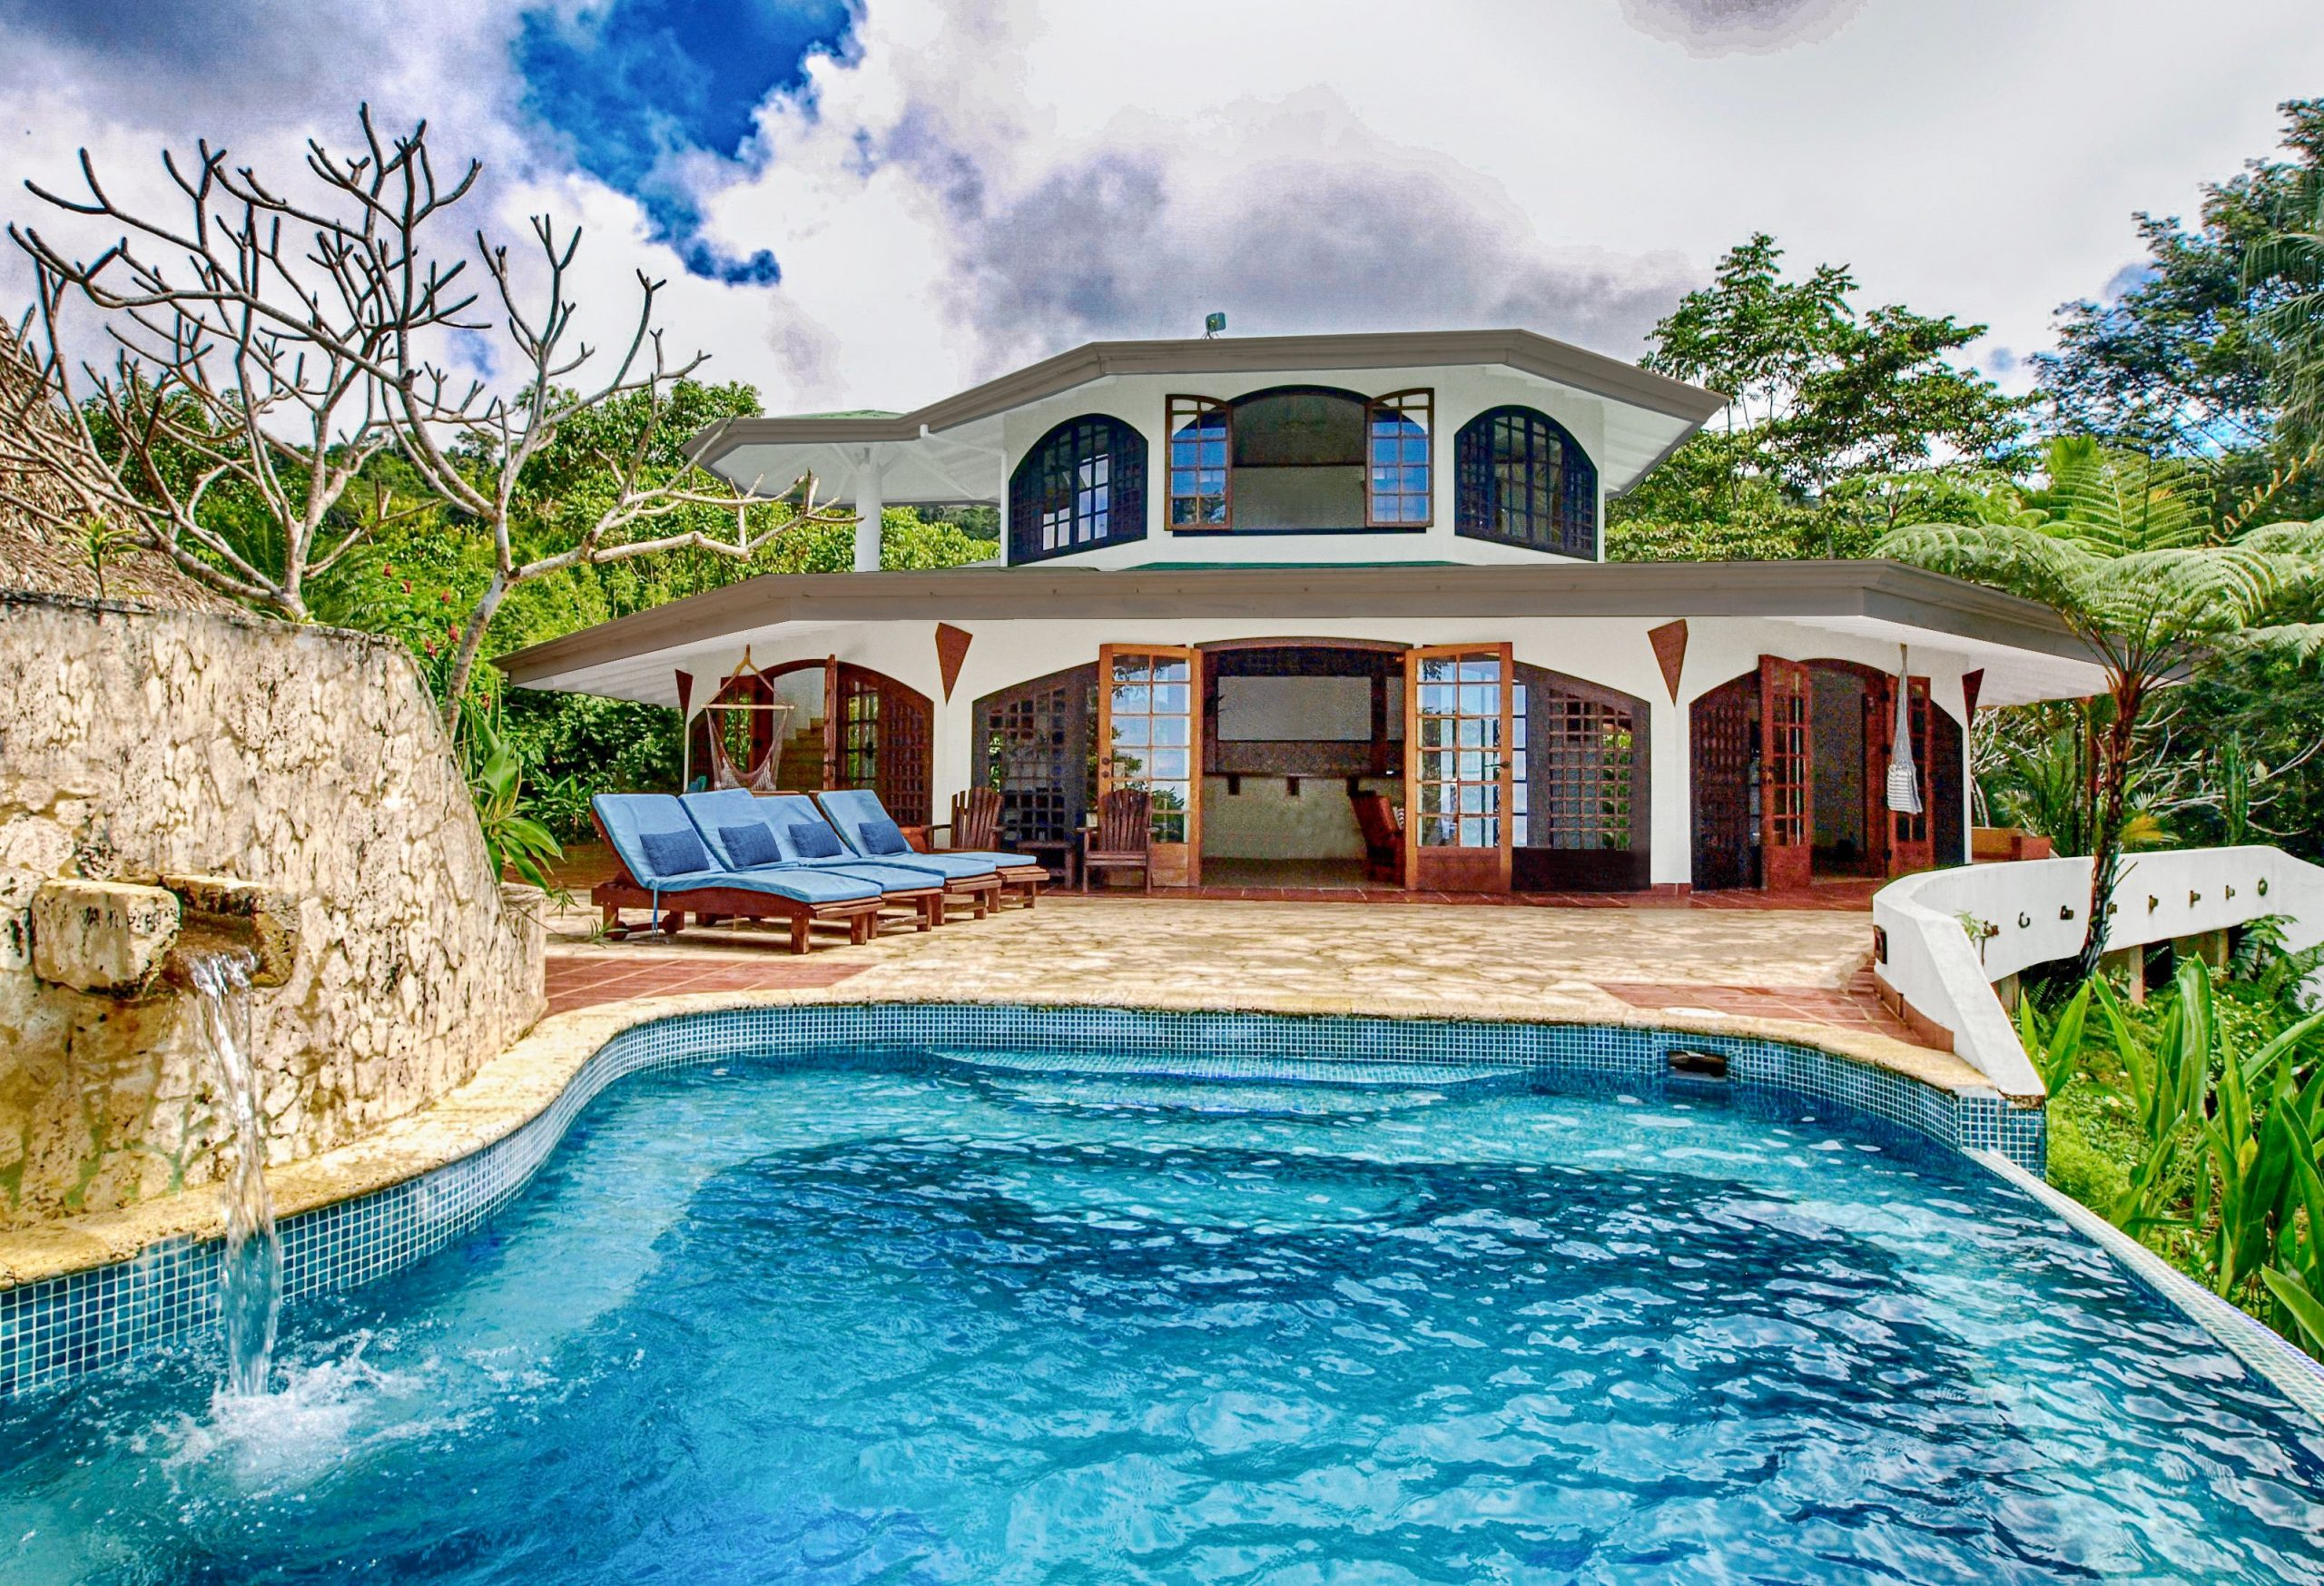 8.8 ACRES 3-Bedroom Tropical Ocean View With Pool In Fabulous Rainforest Setting